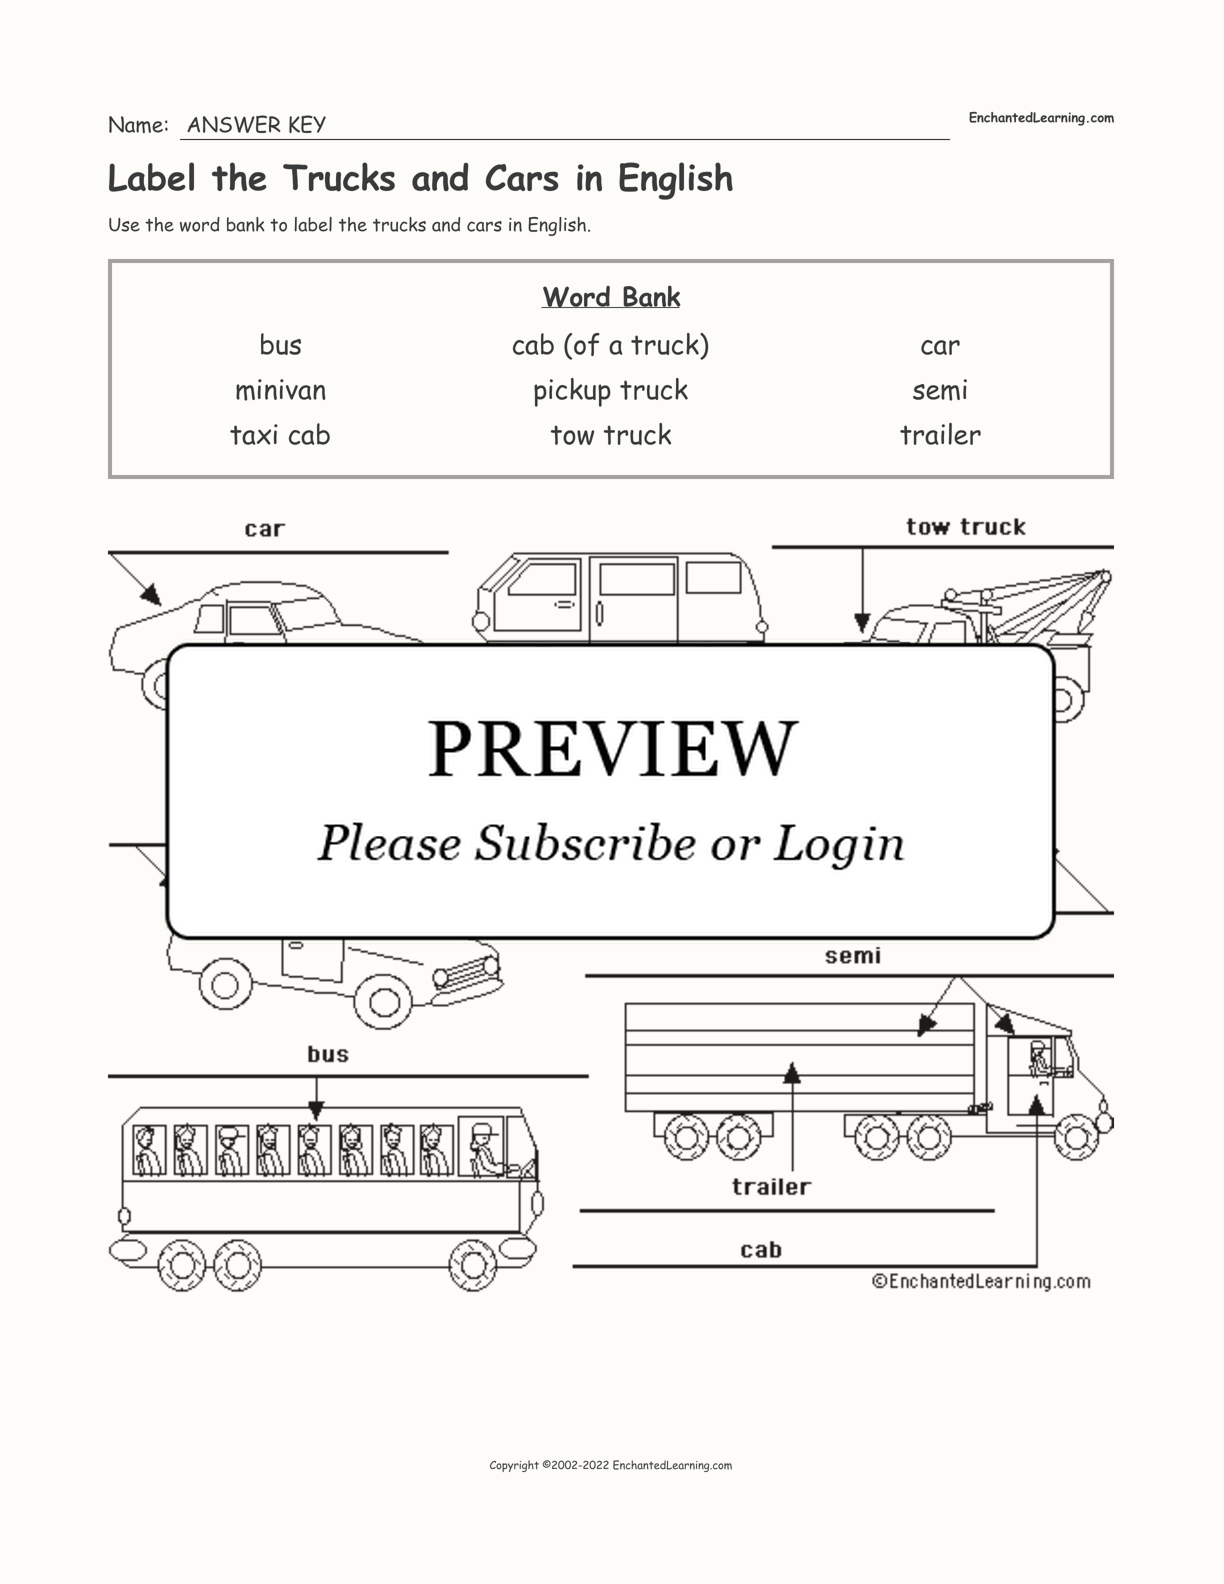 Label the Trucks and Cars in English interactive worksheet page 2